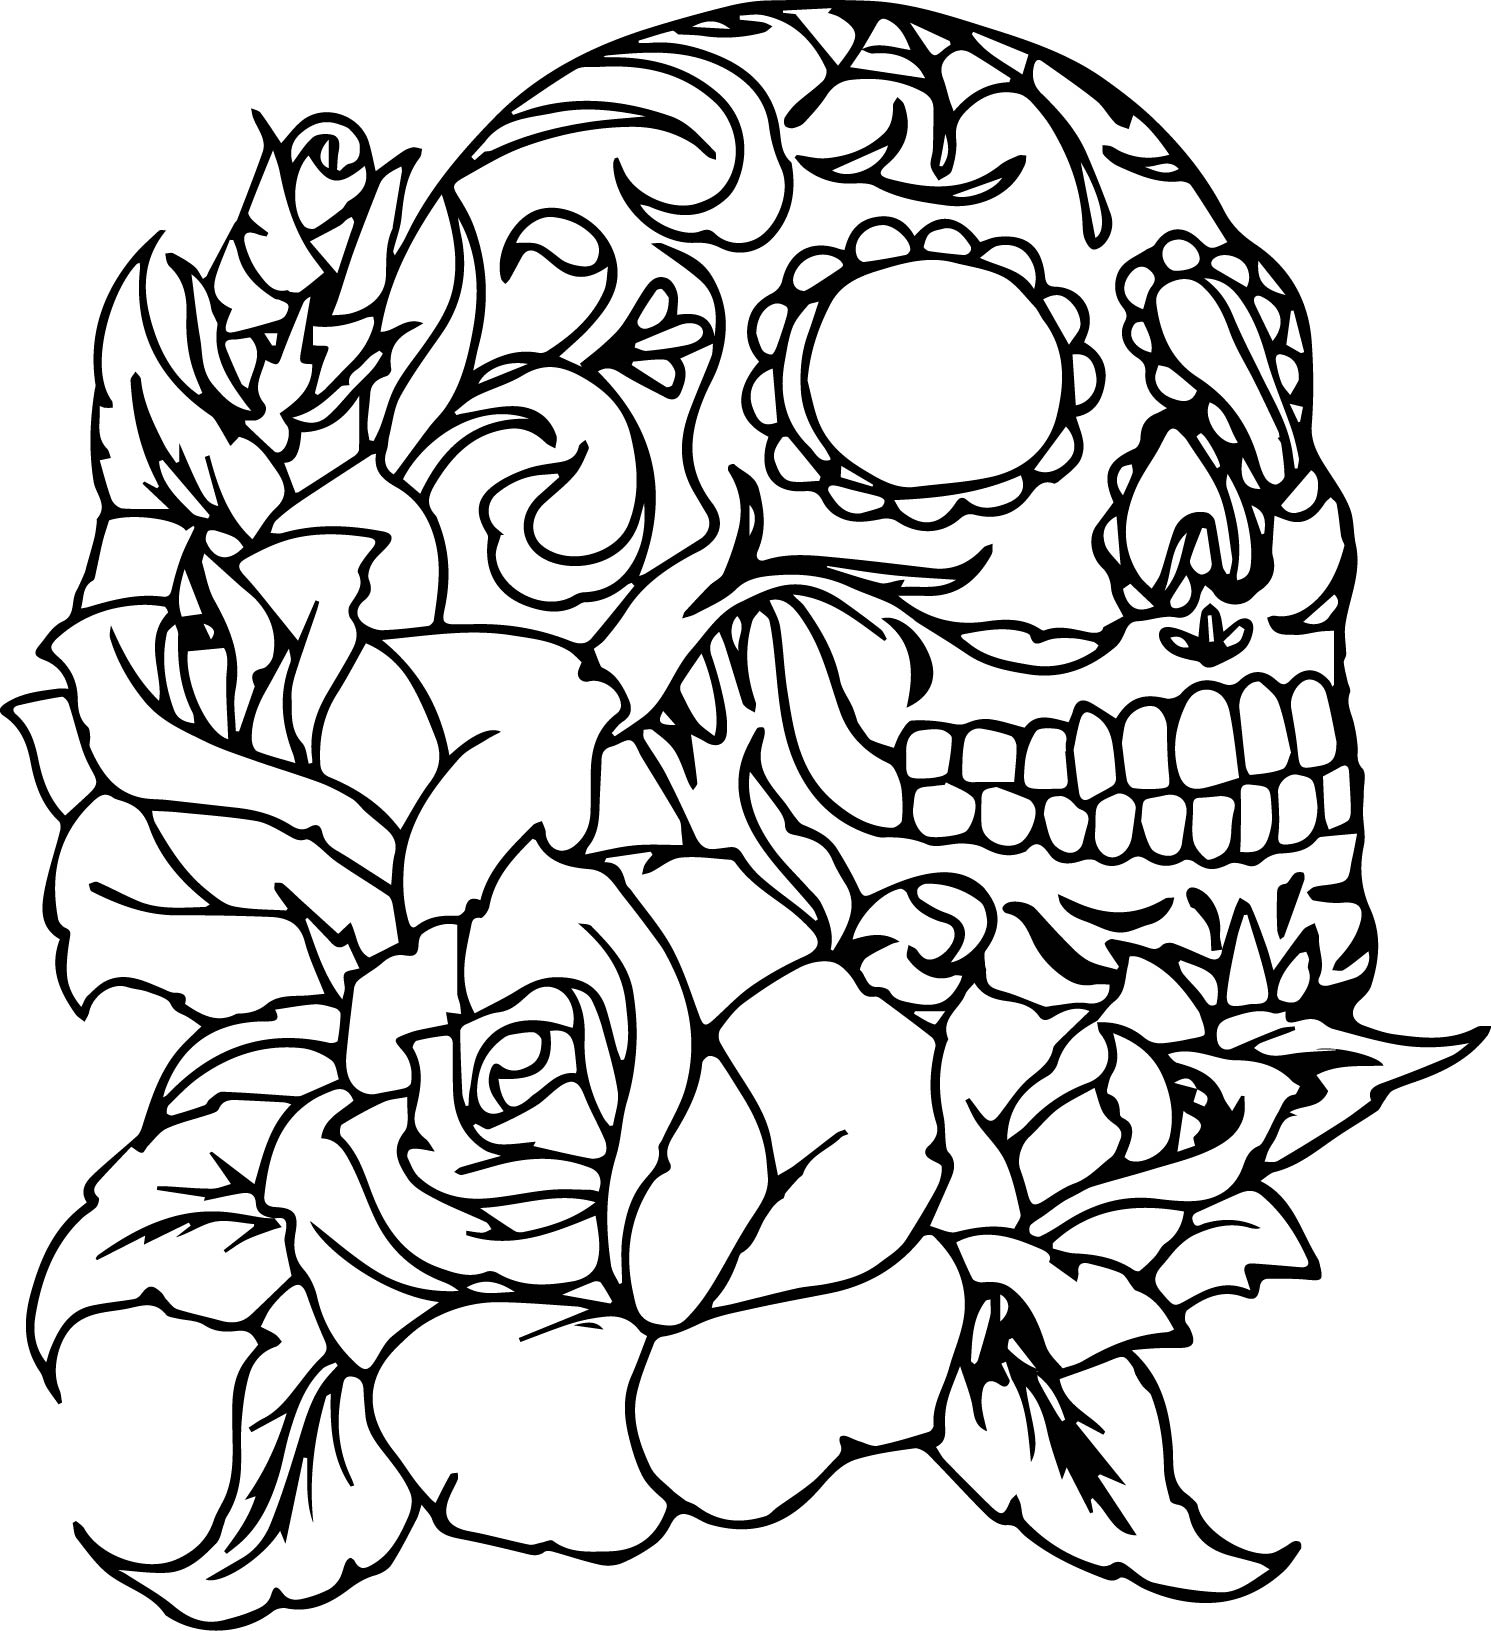 1491x1631 Innovative Roses Coloring Pages With Many Leaf Free Printable